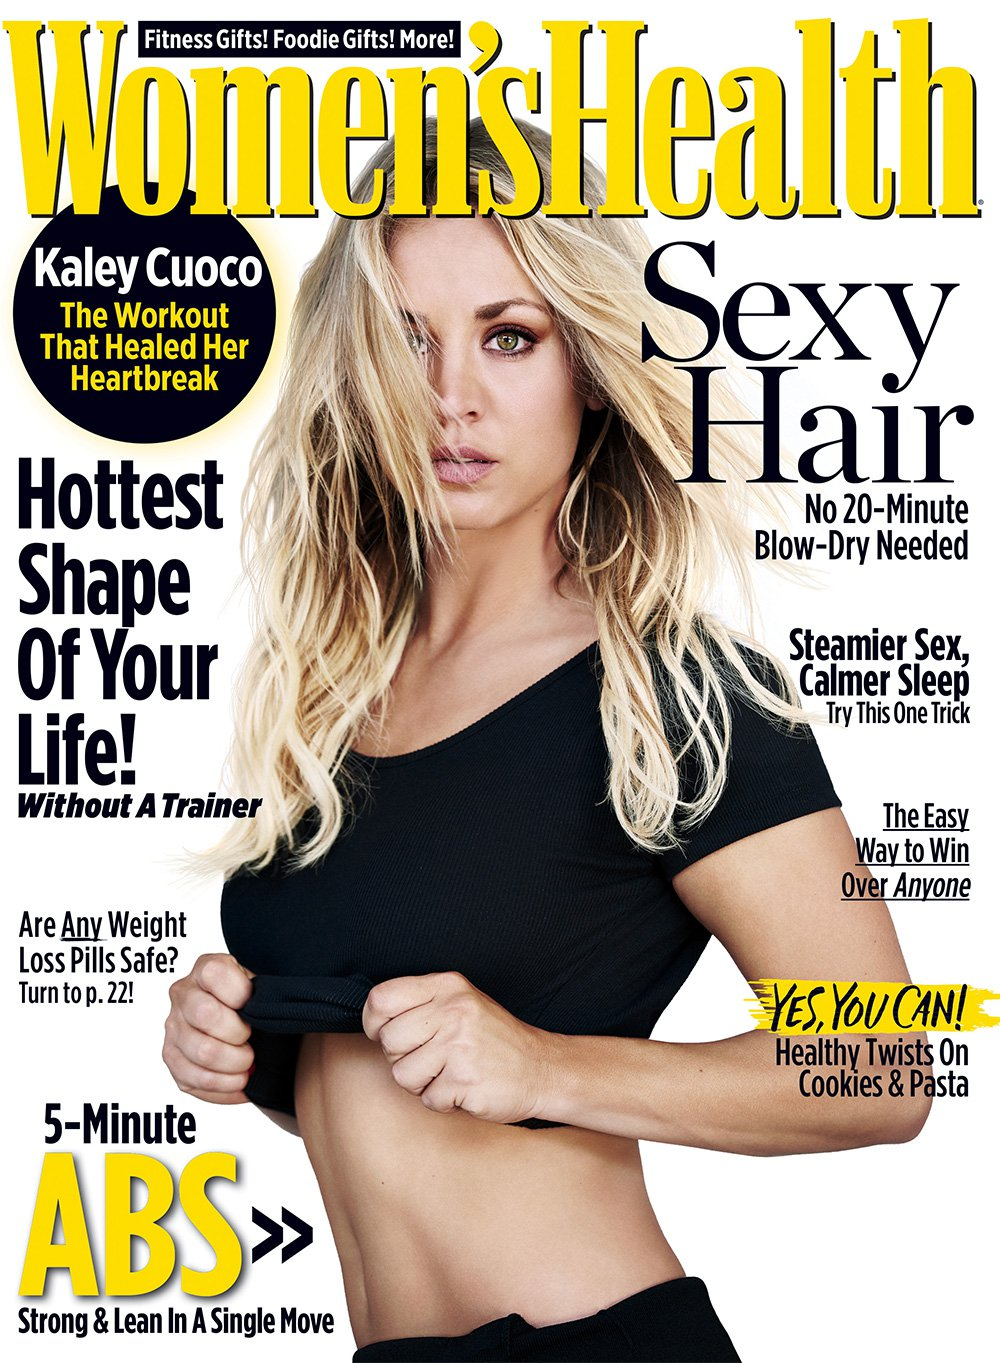 kaley-cuoco-cover.jpg